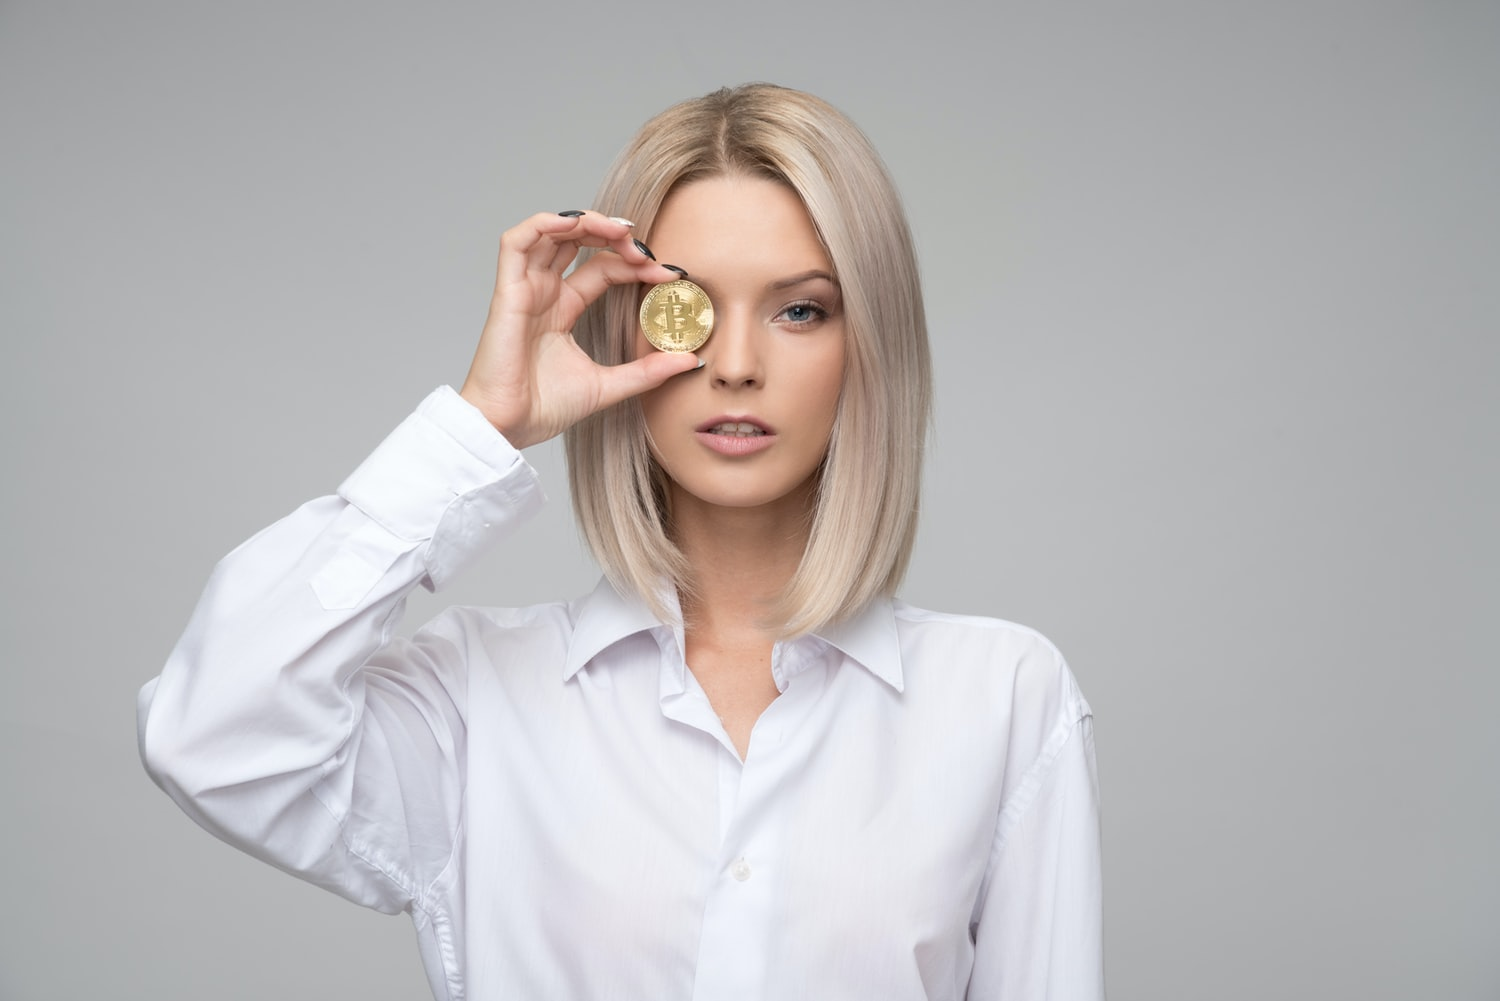 Top 5 Bitcoin And Crypto Investing Sites